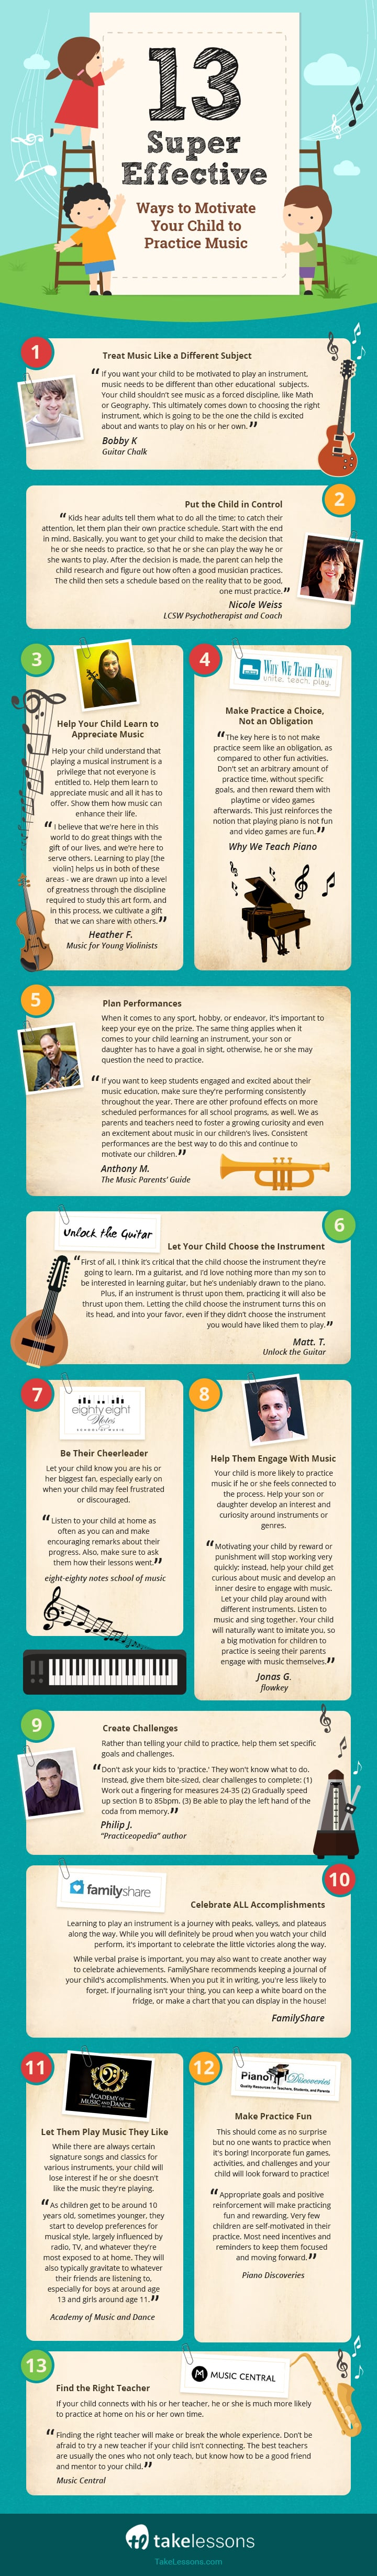 Infographic Courtesy of TakeLessons